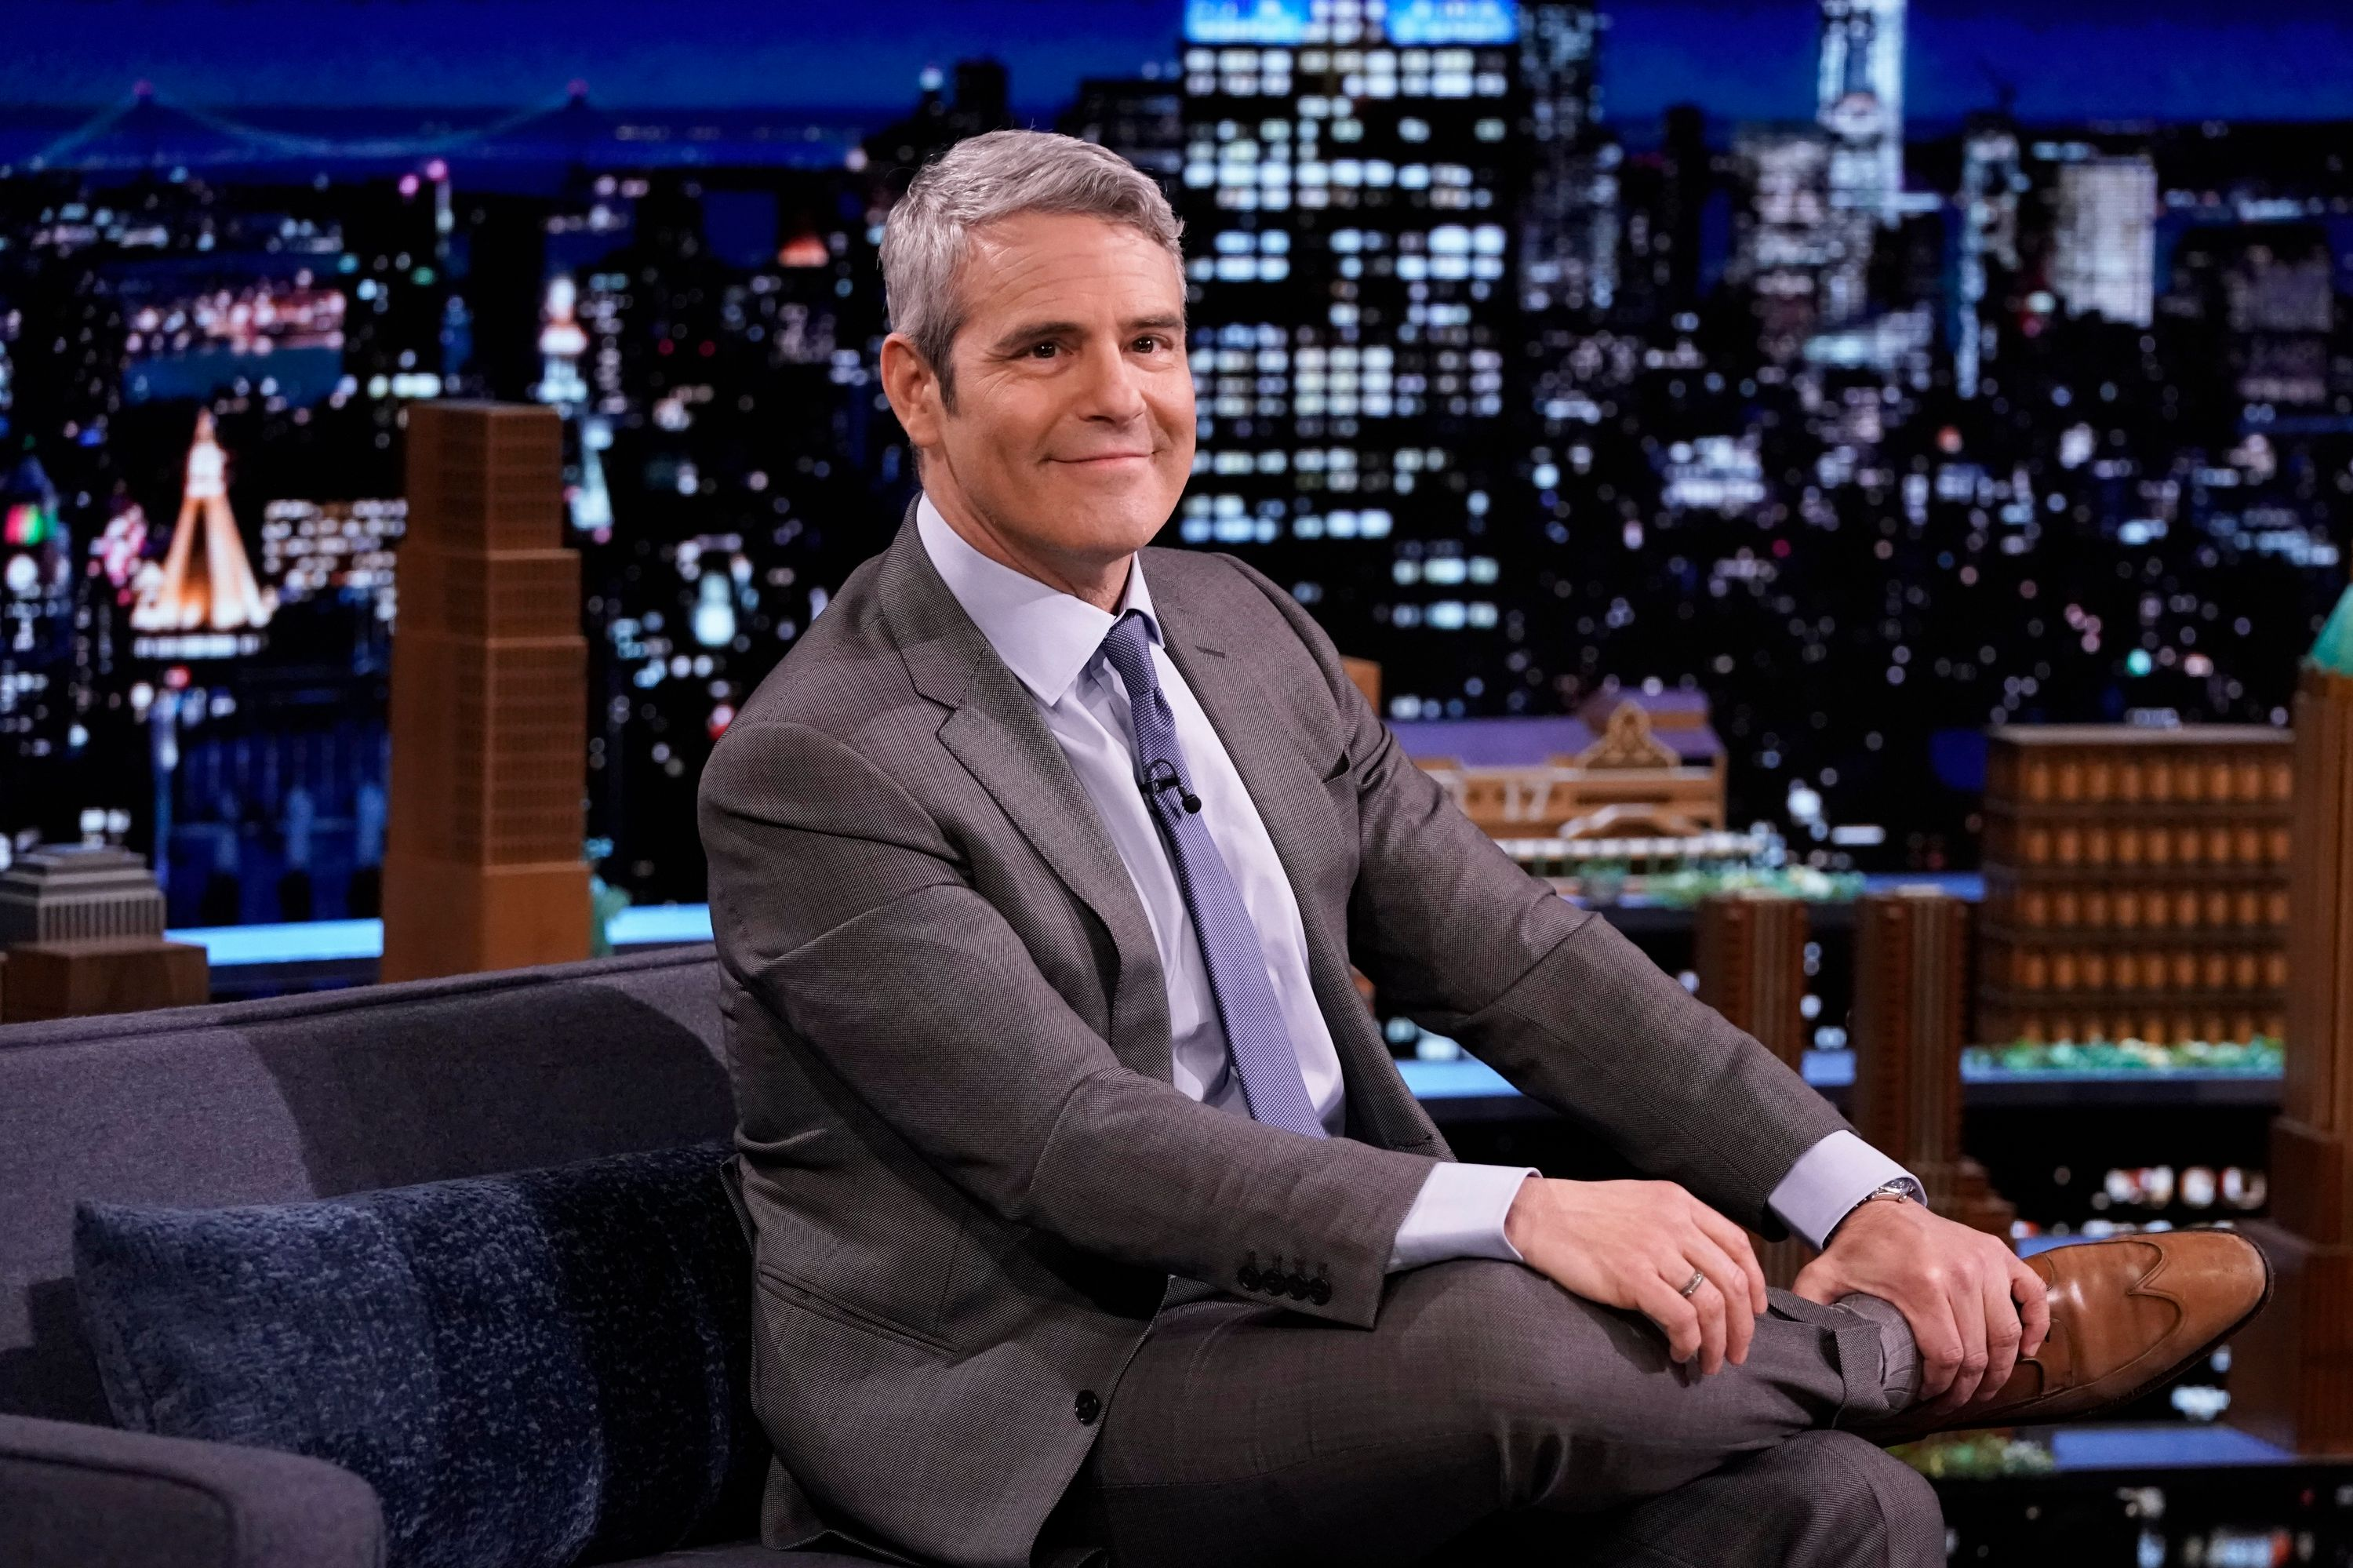 Andy Cohen at an interview on March 22, 2021 | Photo: Getty Images